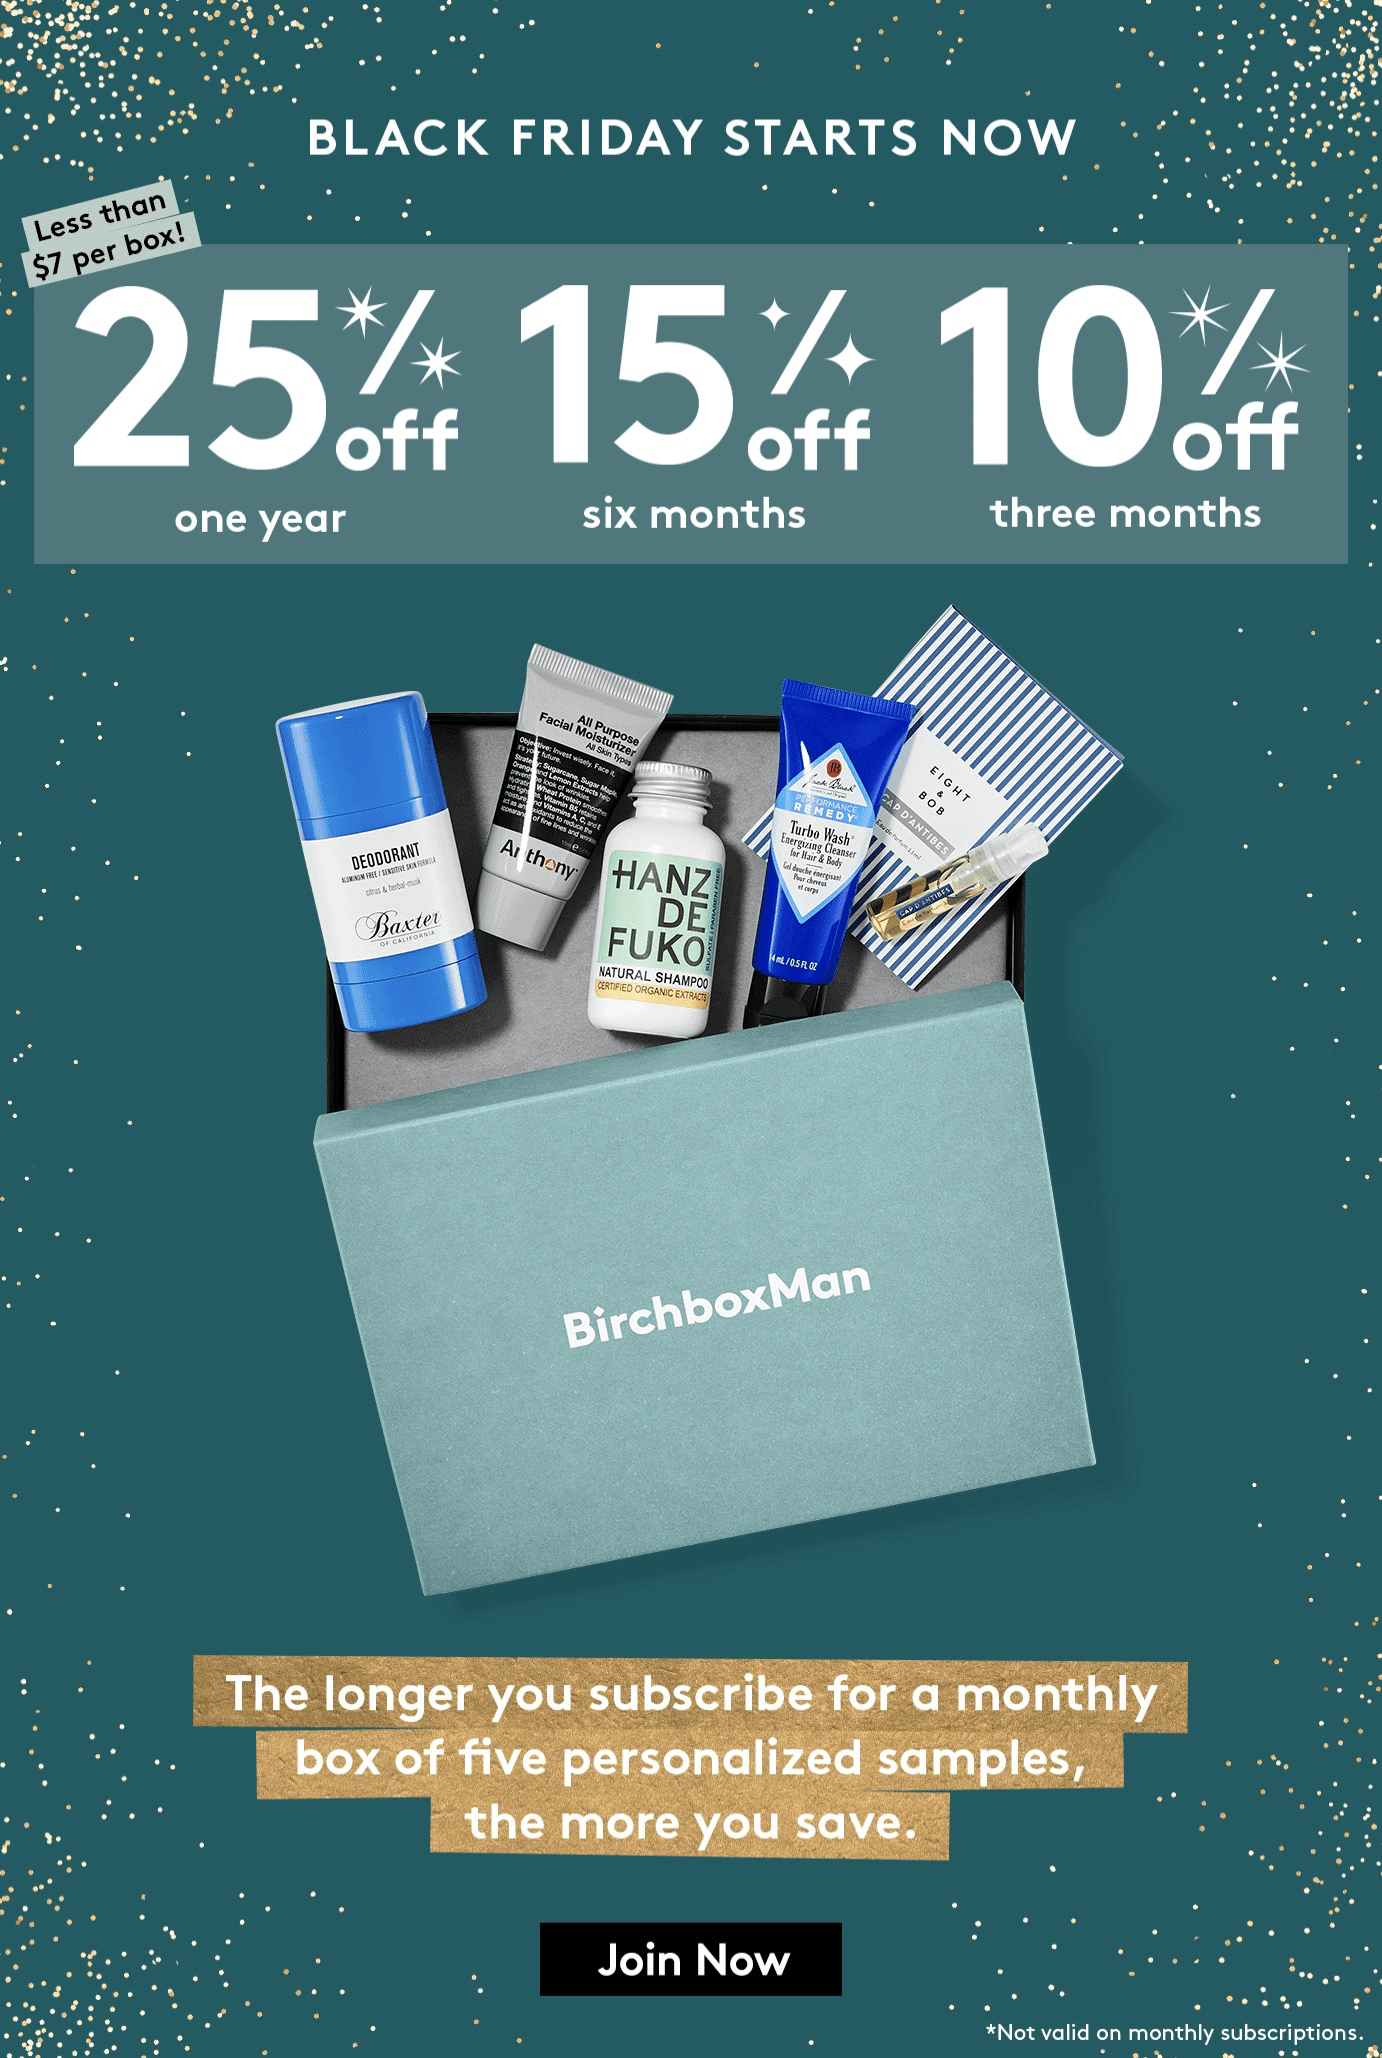 BirchboxMan Cyber Monday 2018 Deal: Save Up To 25% On Subscriptions!